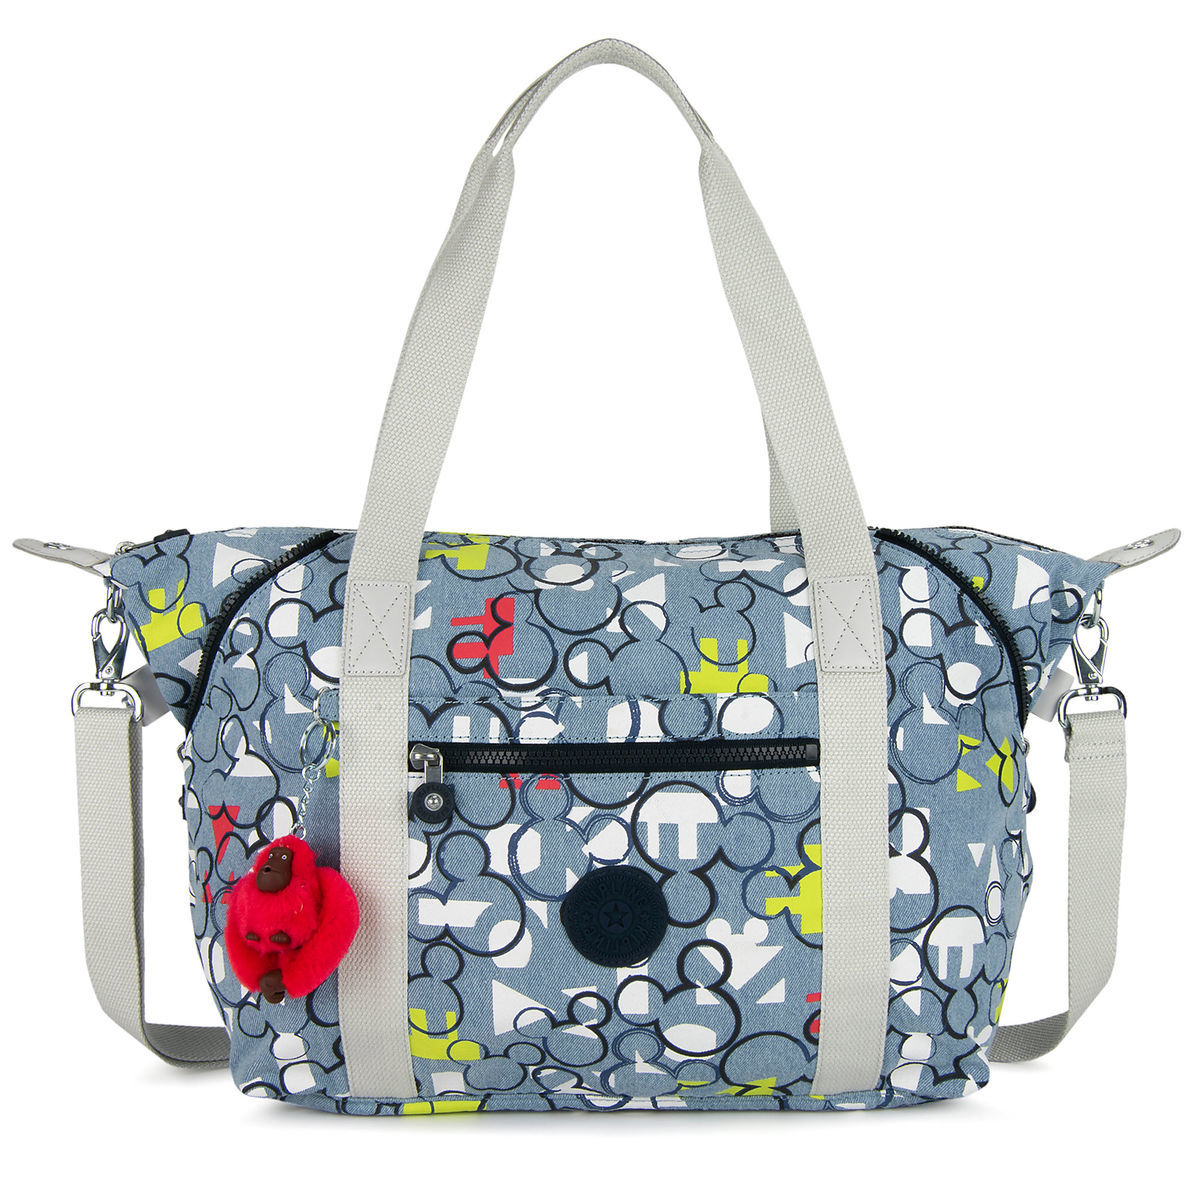 Product Image of Mickey Mouse Duffle Bag by Kipling   1 7f19e89fa3327